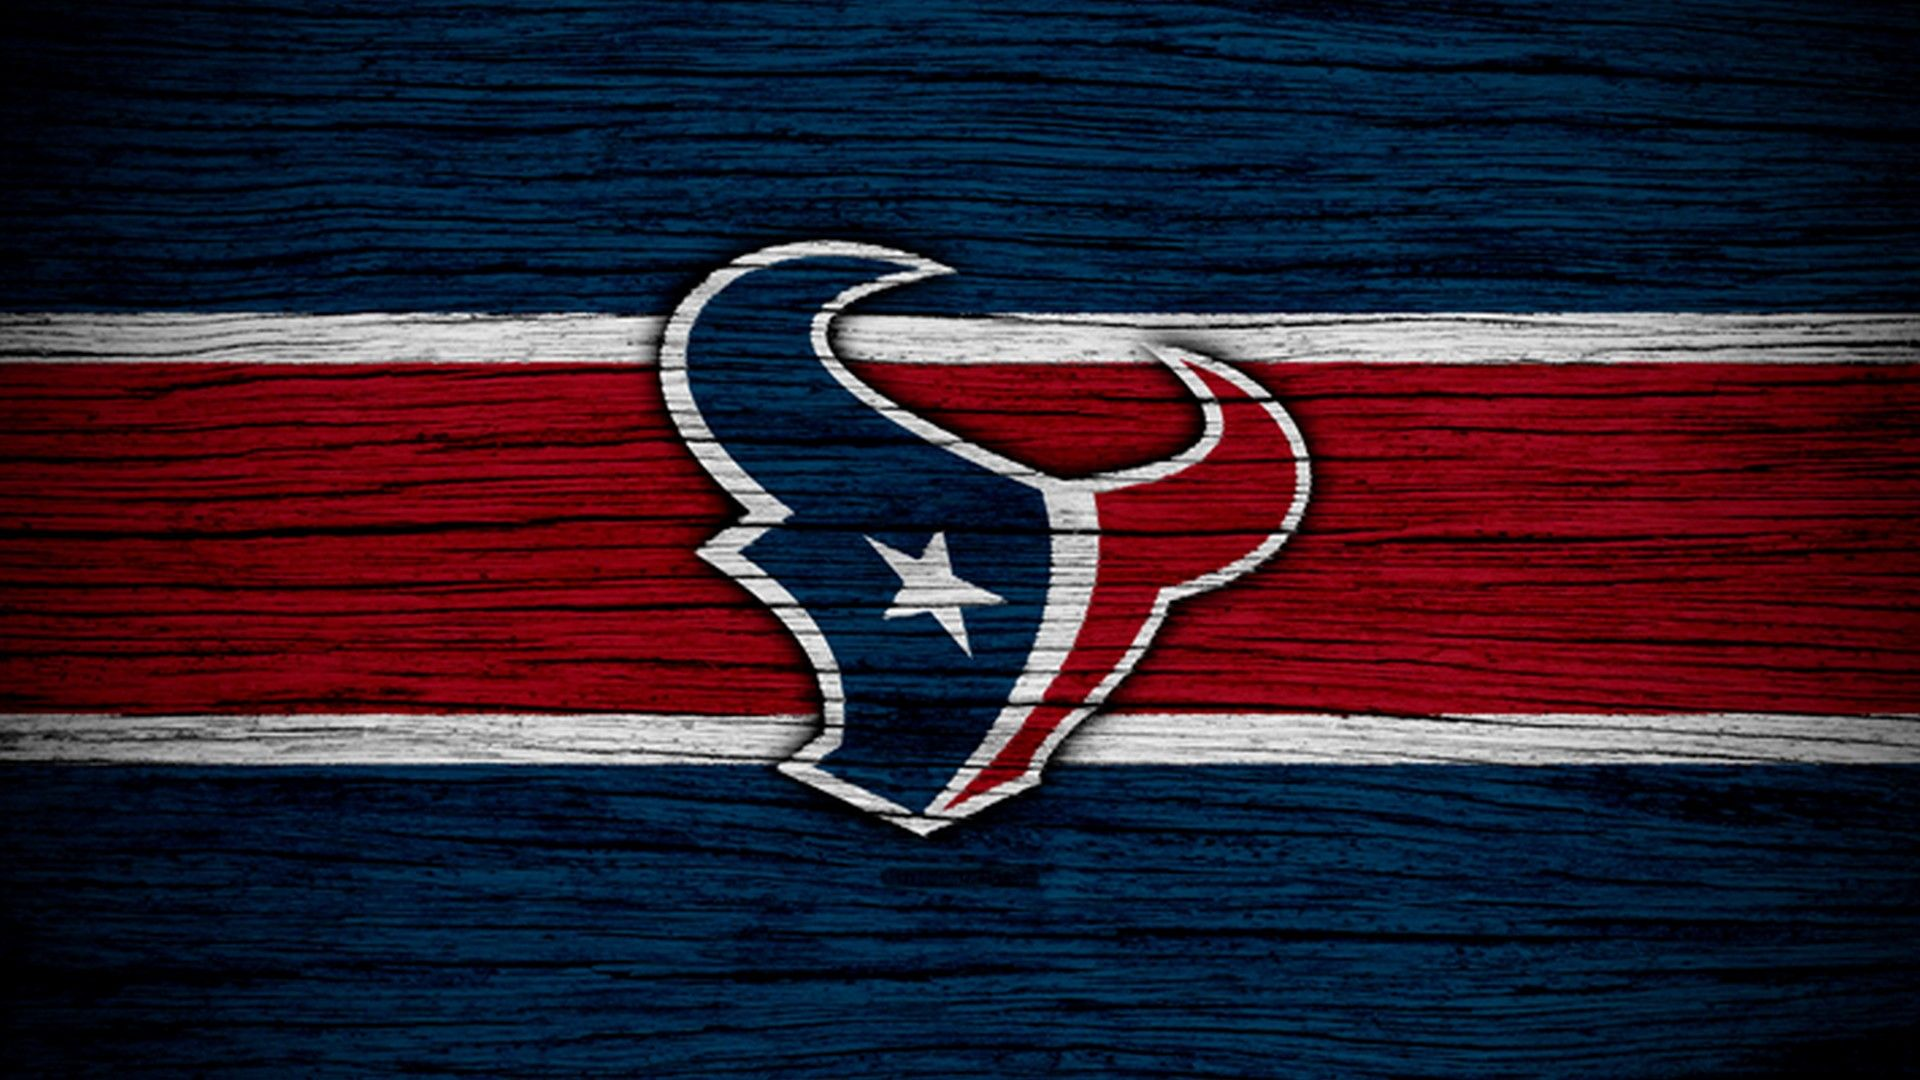 Houston Texans picture hd